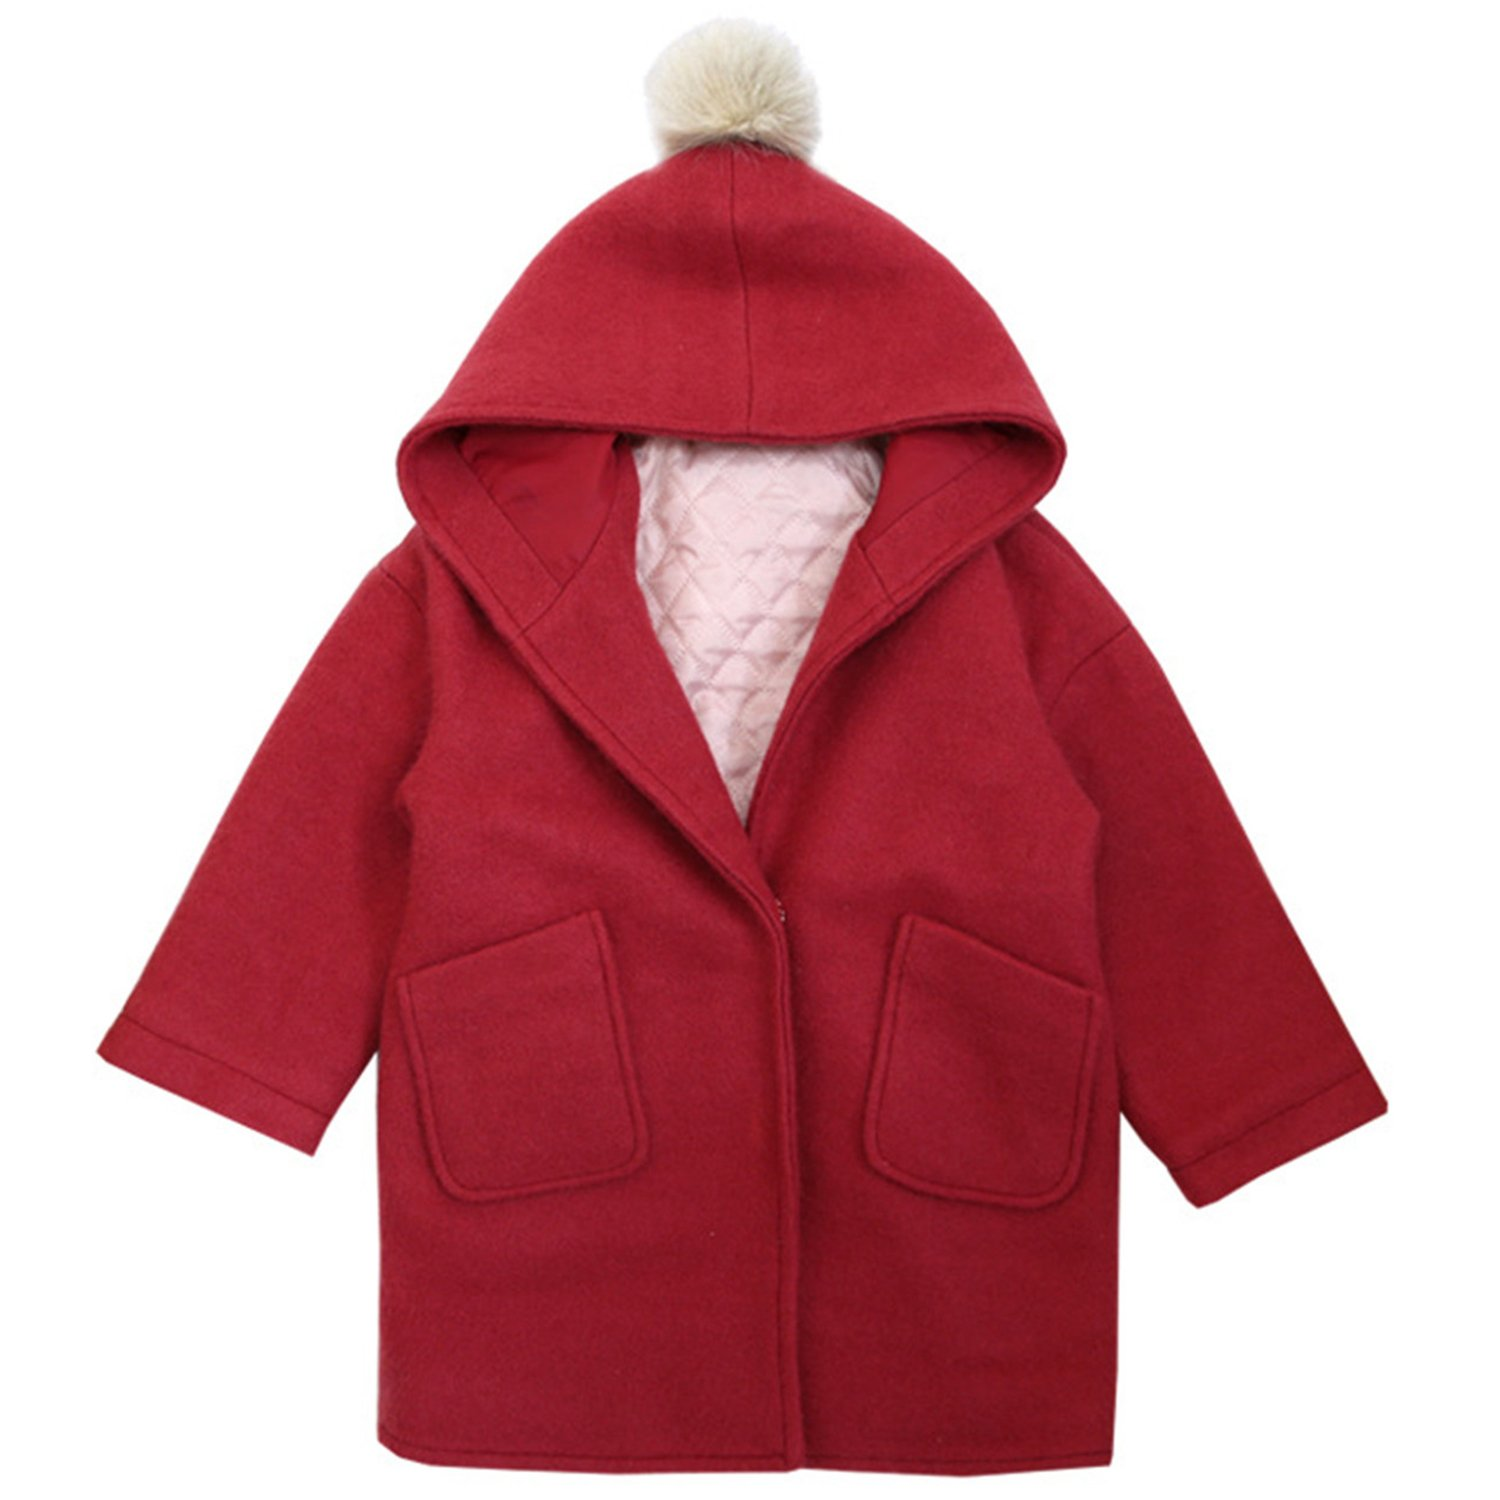 Euno Girls Autumn and Winter Lovely Hair Ball O-Neck Hooded Coat Thickening Coat Red R120